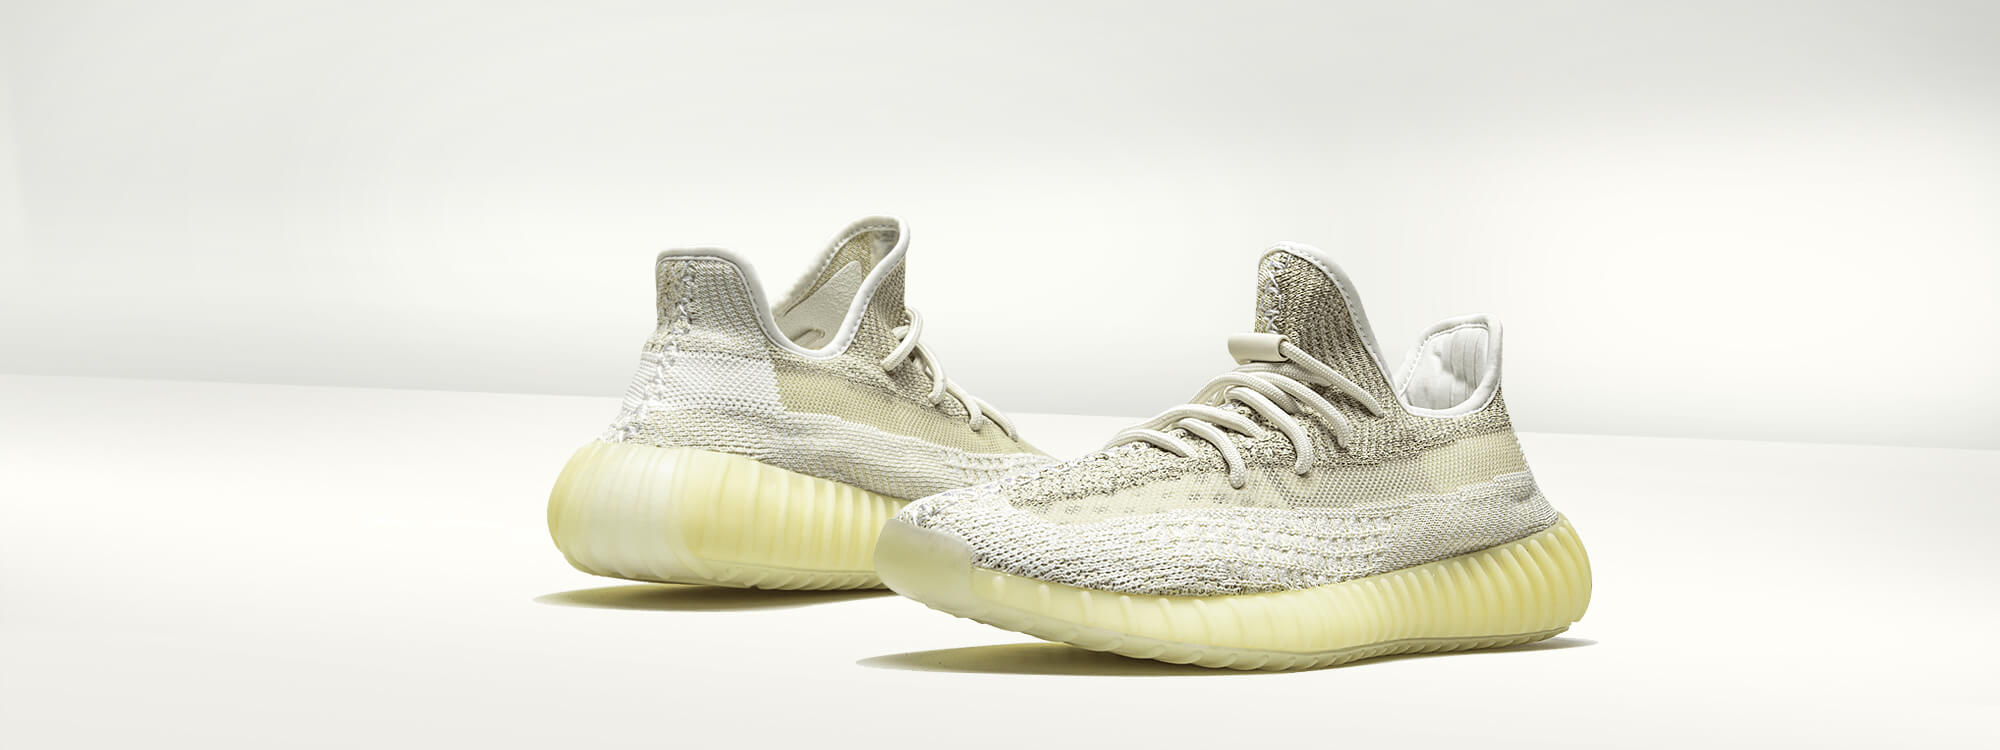 Buy New Adidas Yeezy Boost 350 V2 Natural